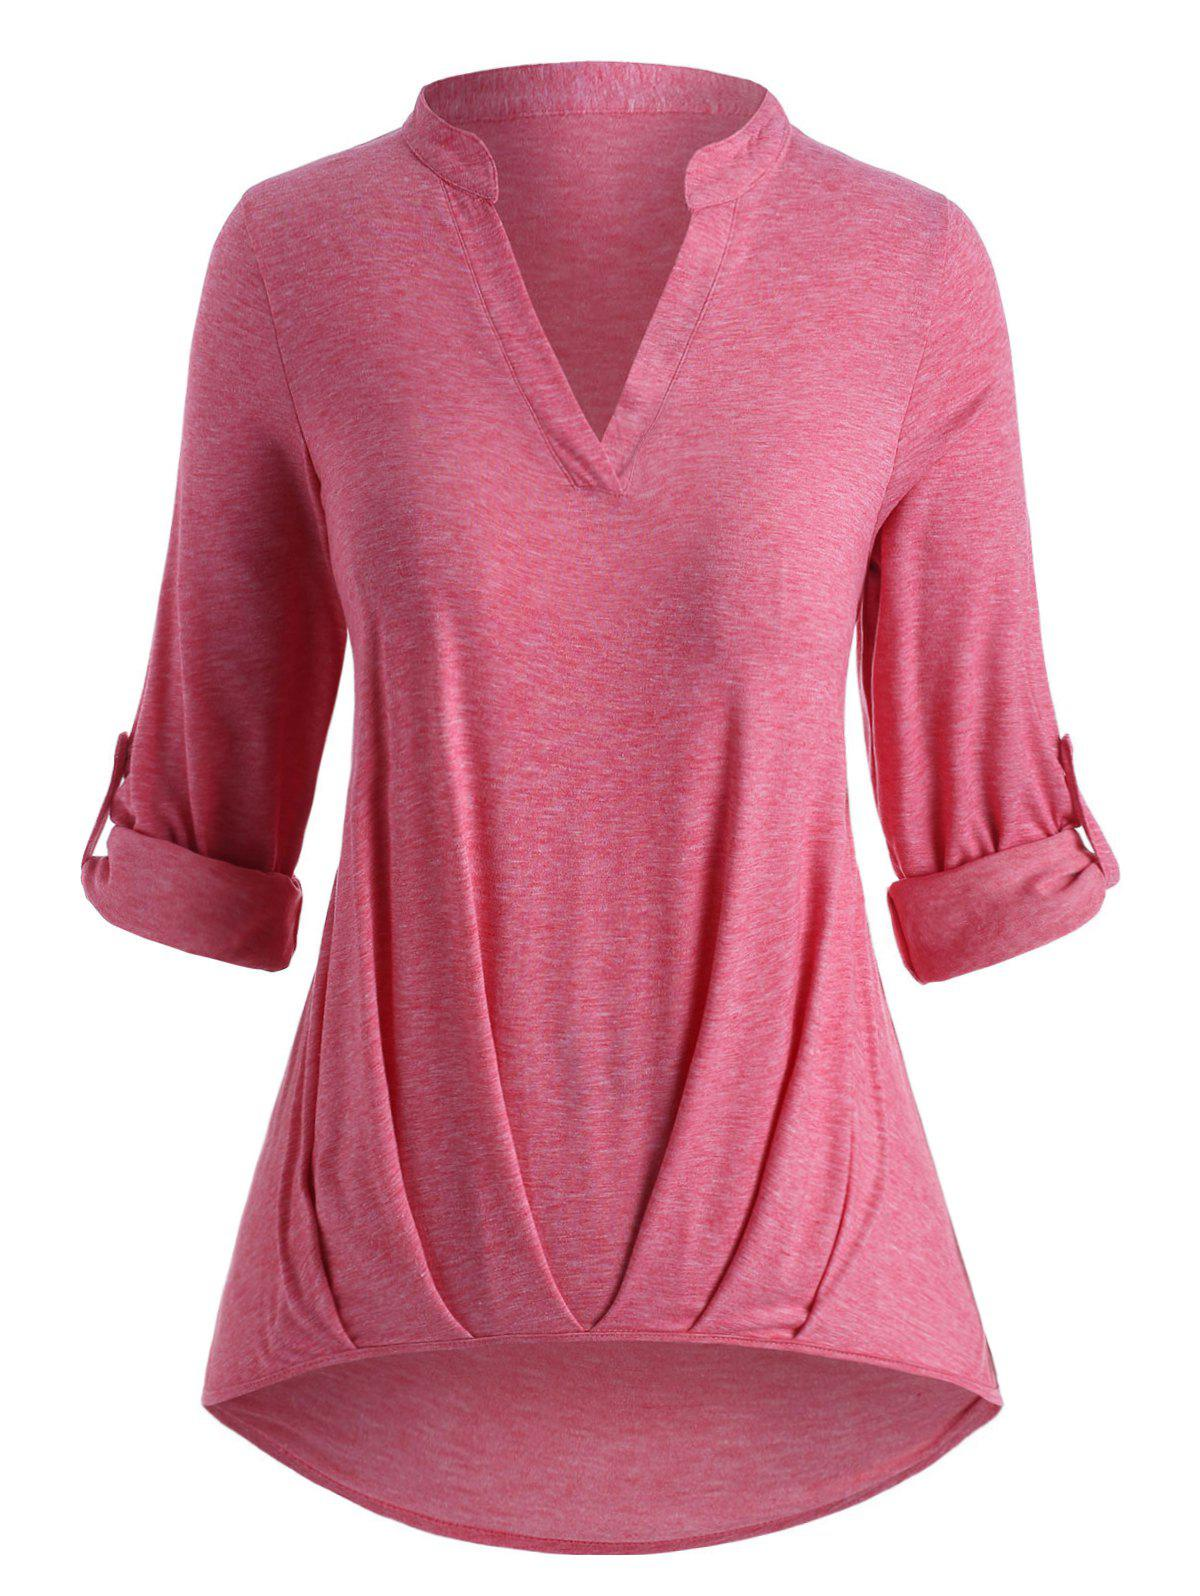 Plus Size Roll Up Sleeve Ruched Hem T Shirt - LIGHT PINK 5X